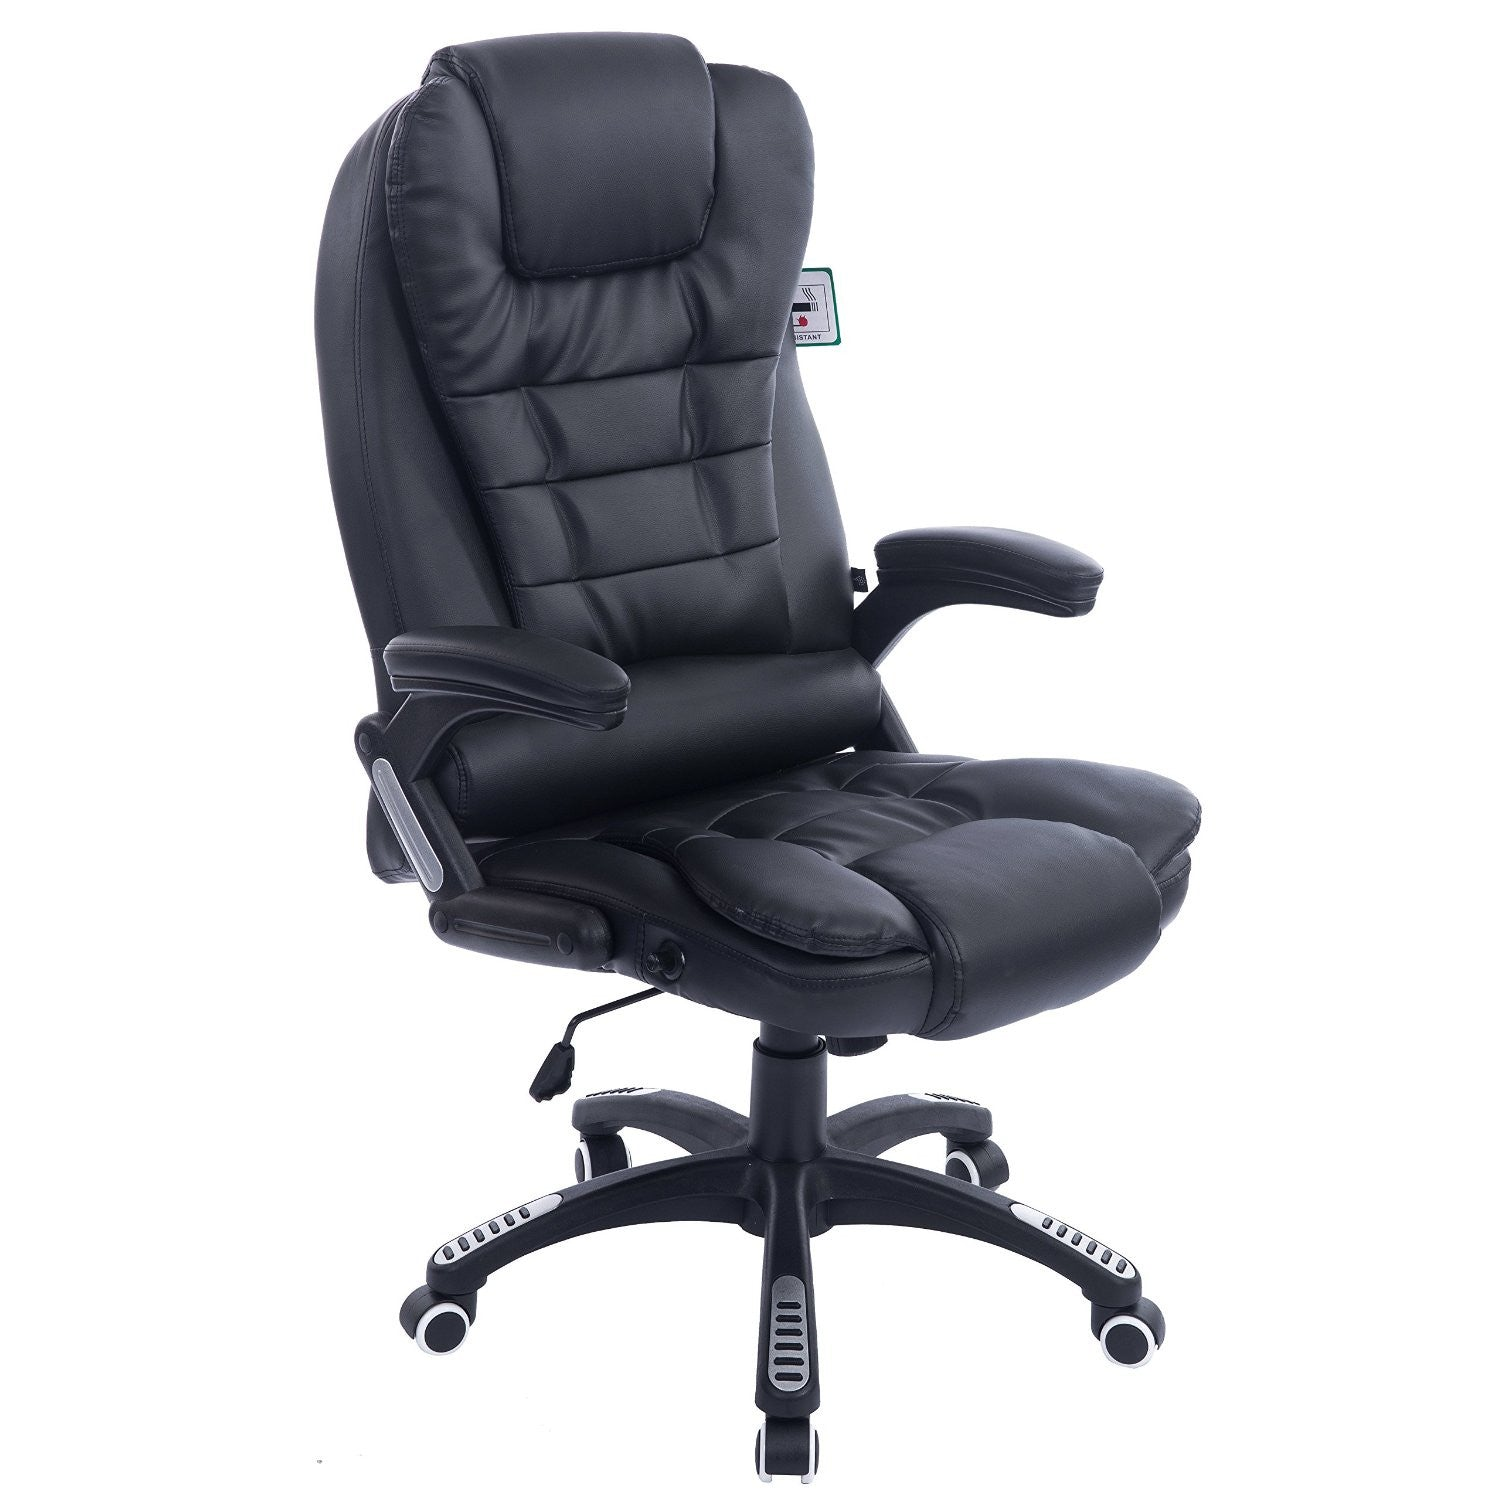 chair with computer design style product recliner back blue reclining ergonomic topsky racing office gaming high leather pu